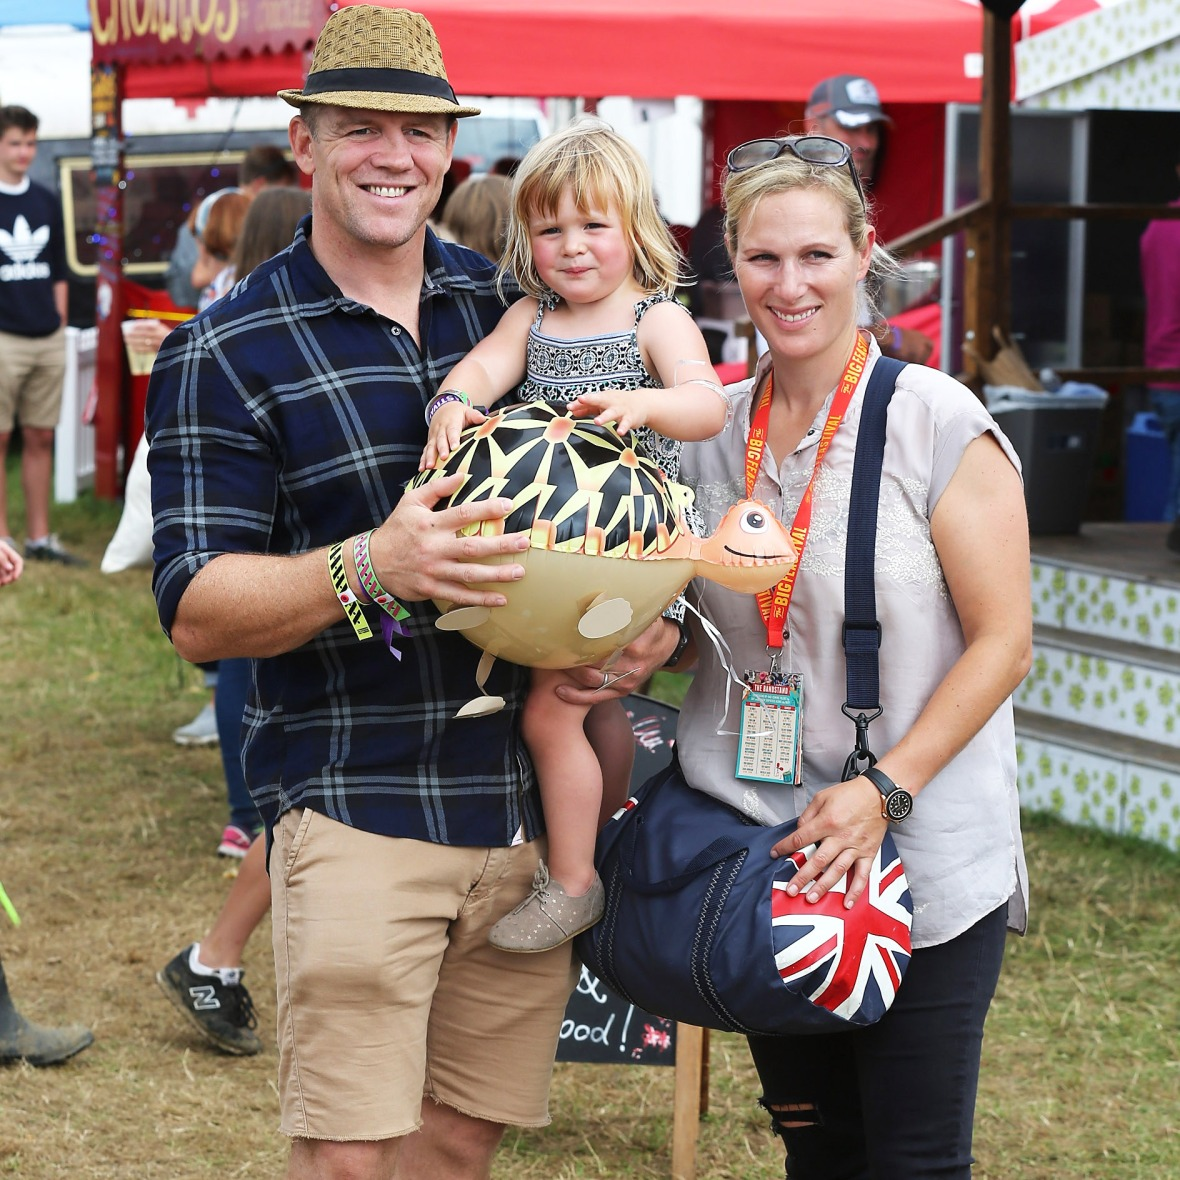 zara tindall family getty images